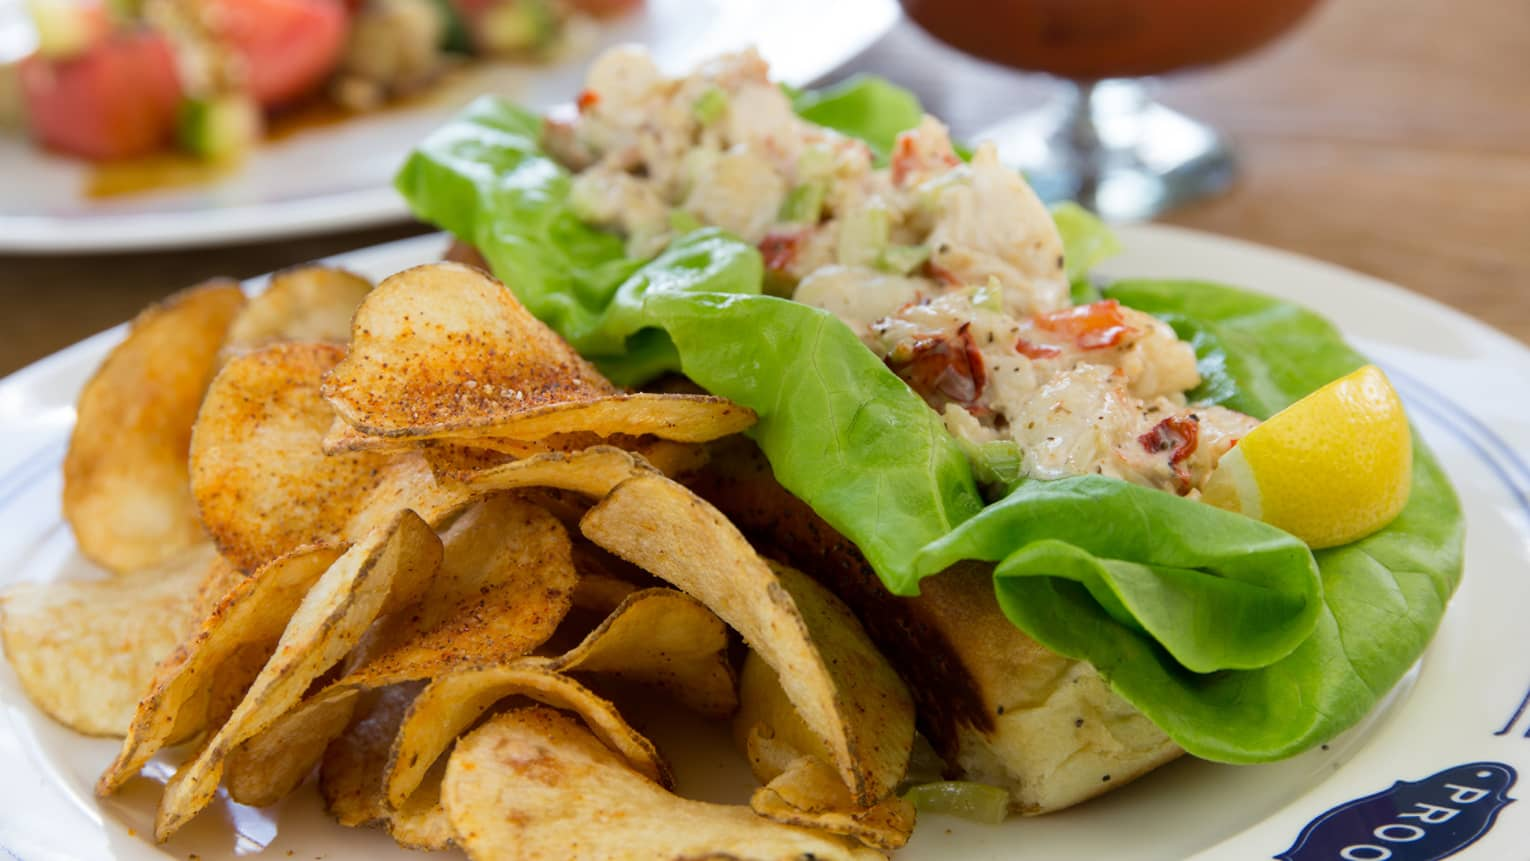 Maine Lobster Roll chopped lobster salad on bun, with green lettuce, potato chips on side